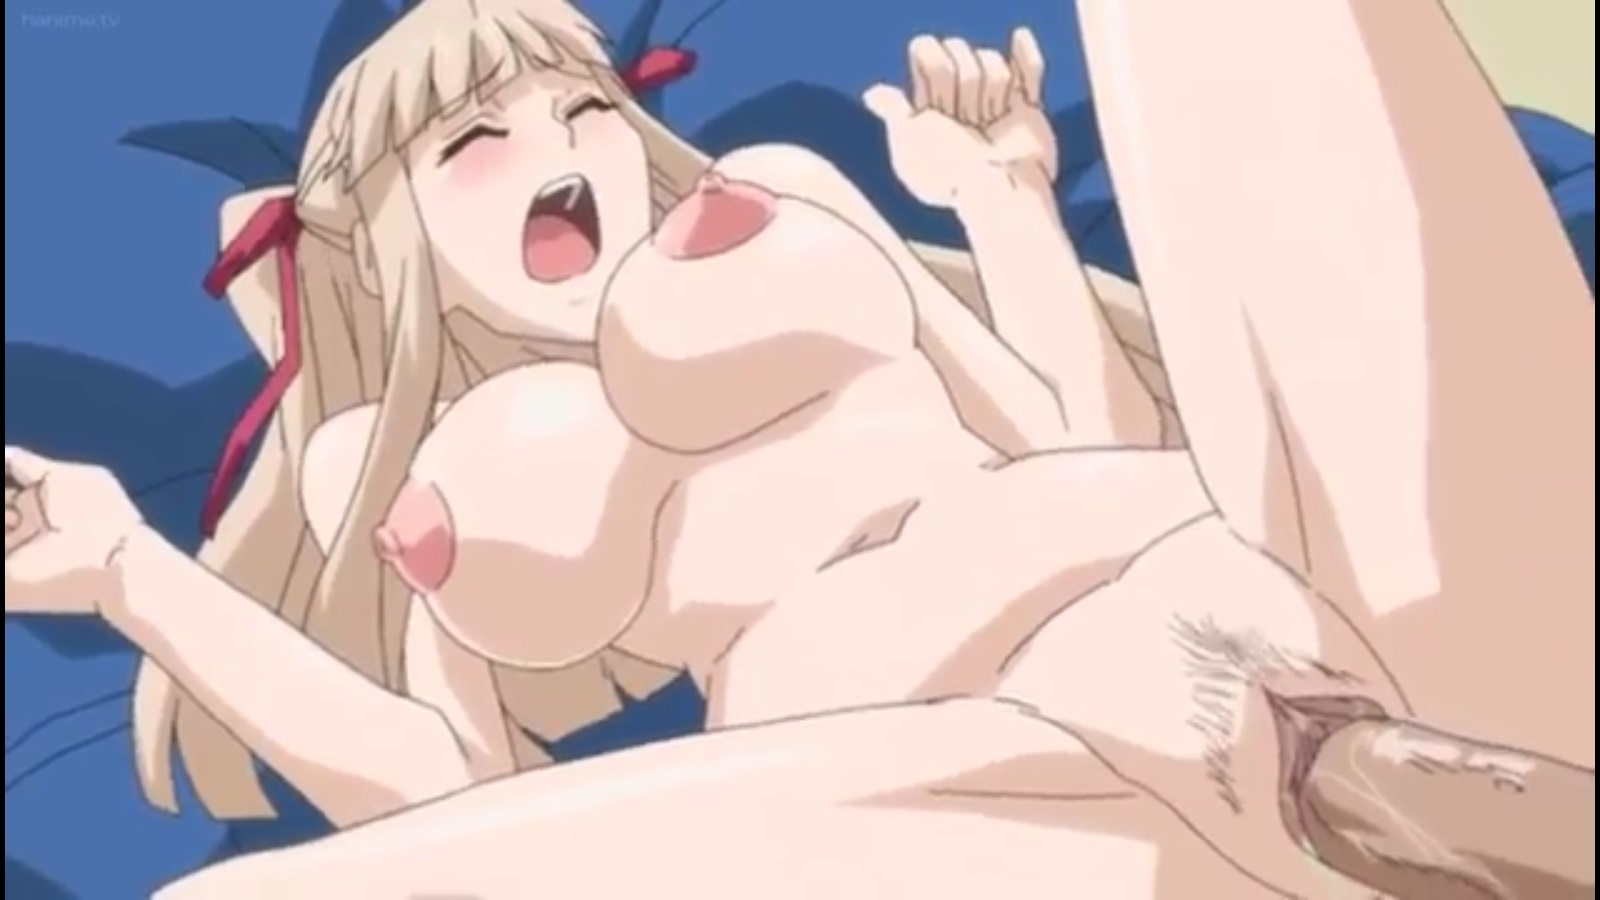 Adult Cartoon Porn Pictures uncensored adult anime pics photos - crpmb